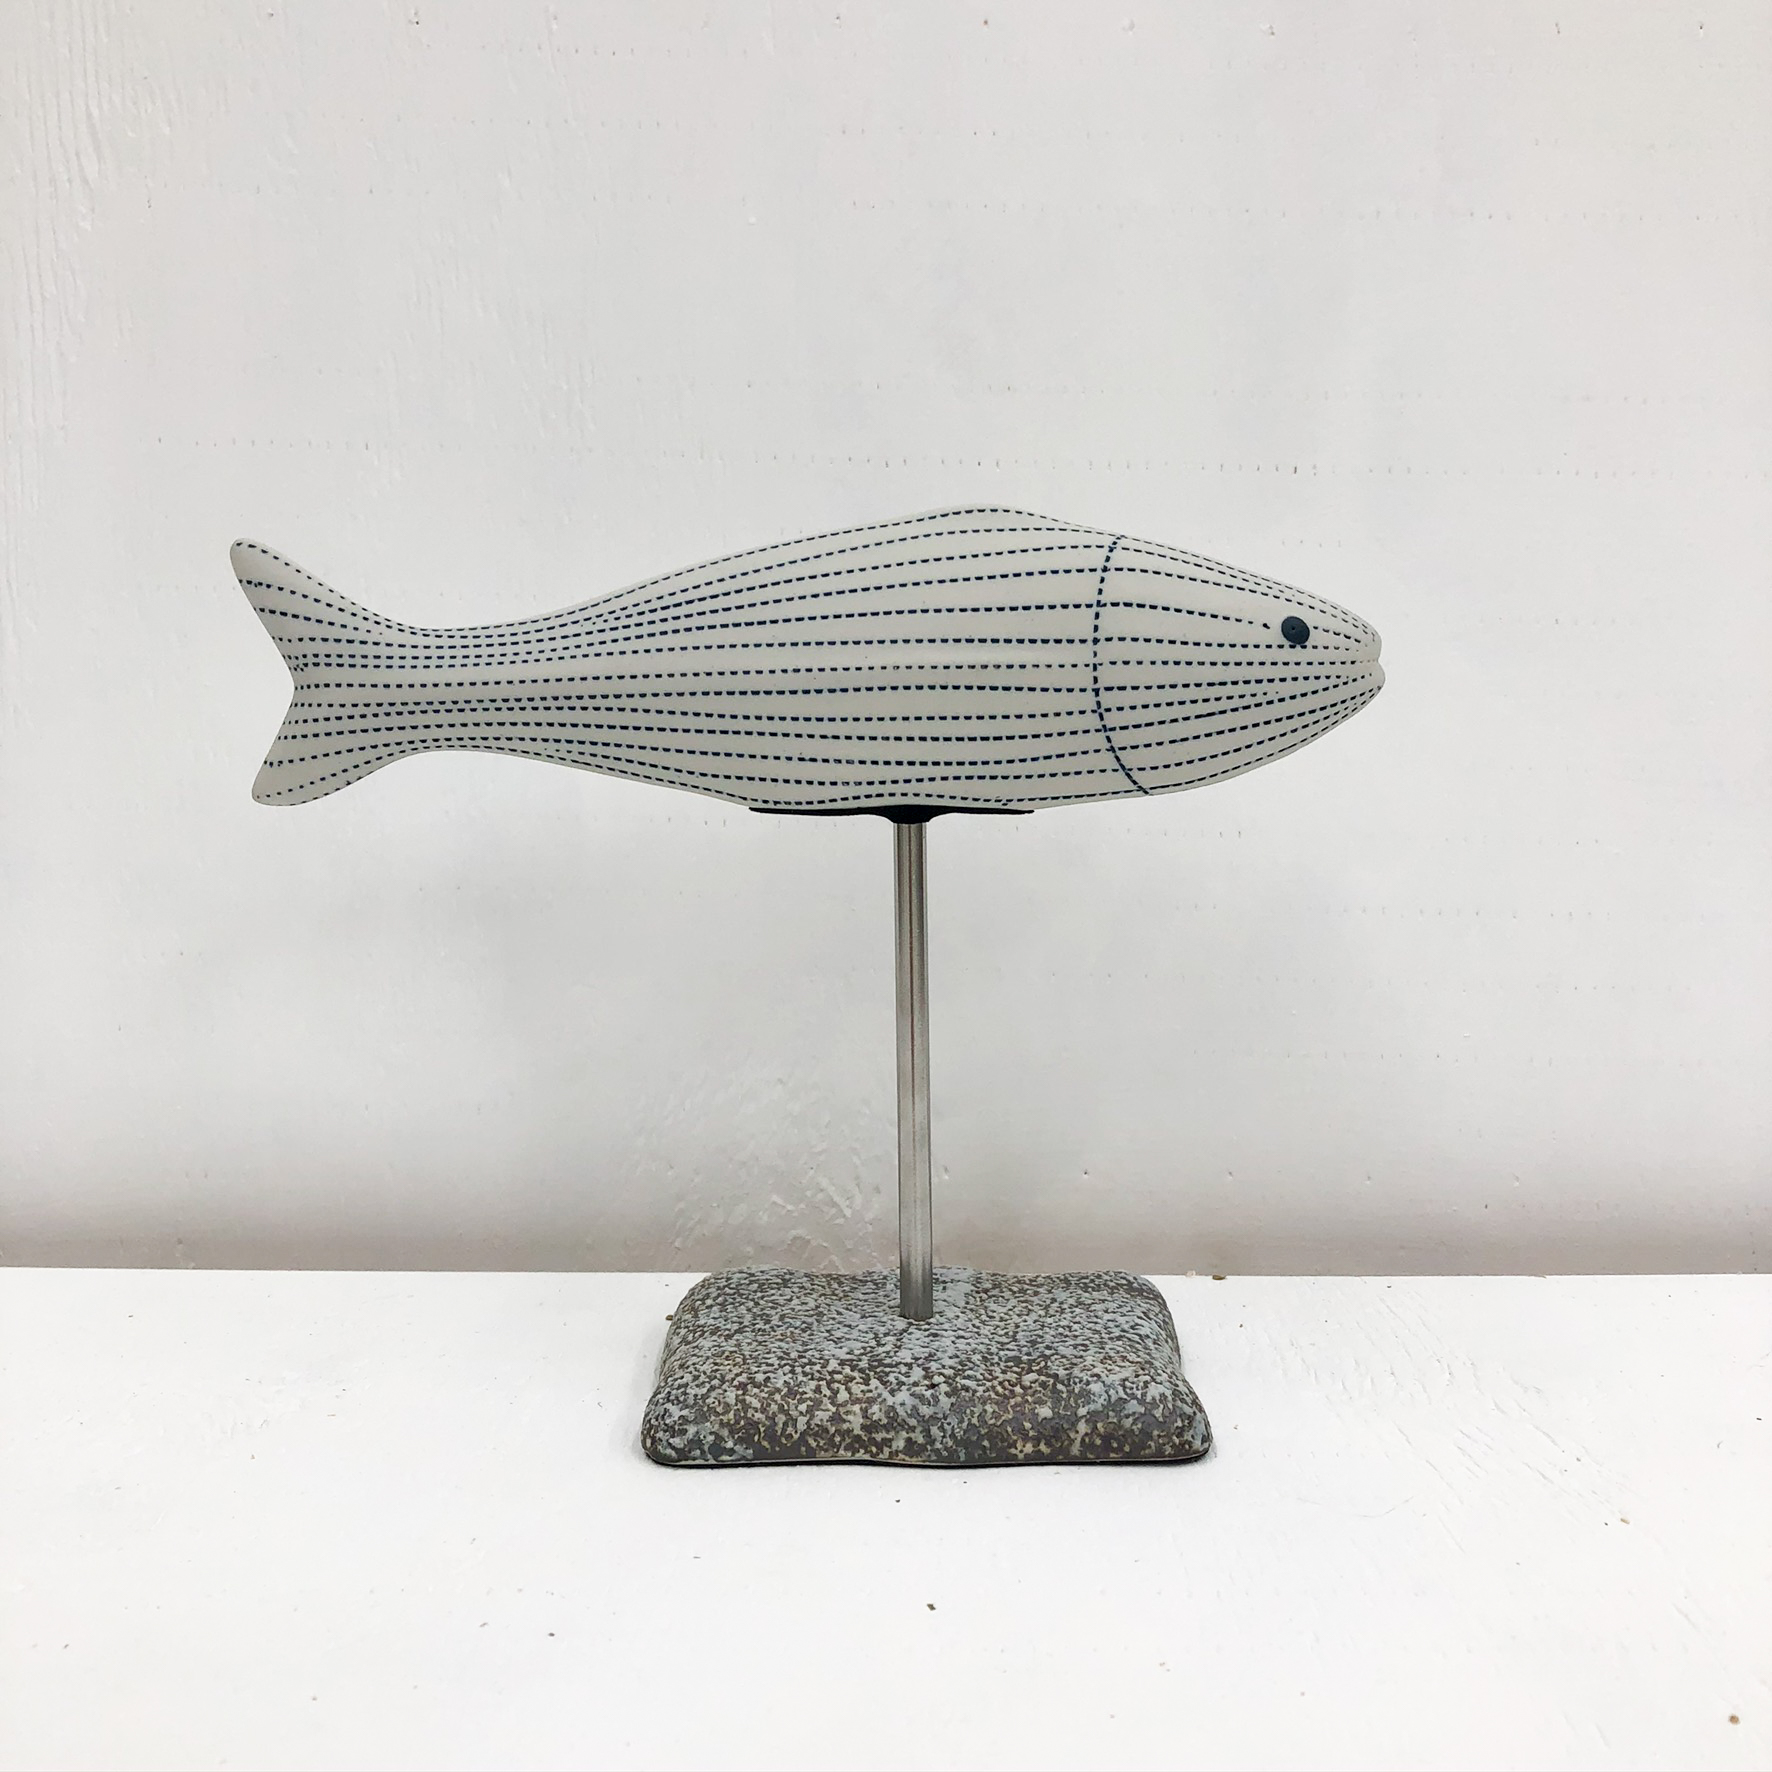 Adrian S Handmade Vase - White and Blue Fish